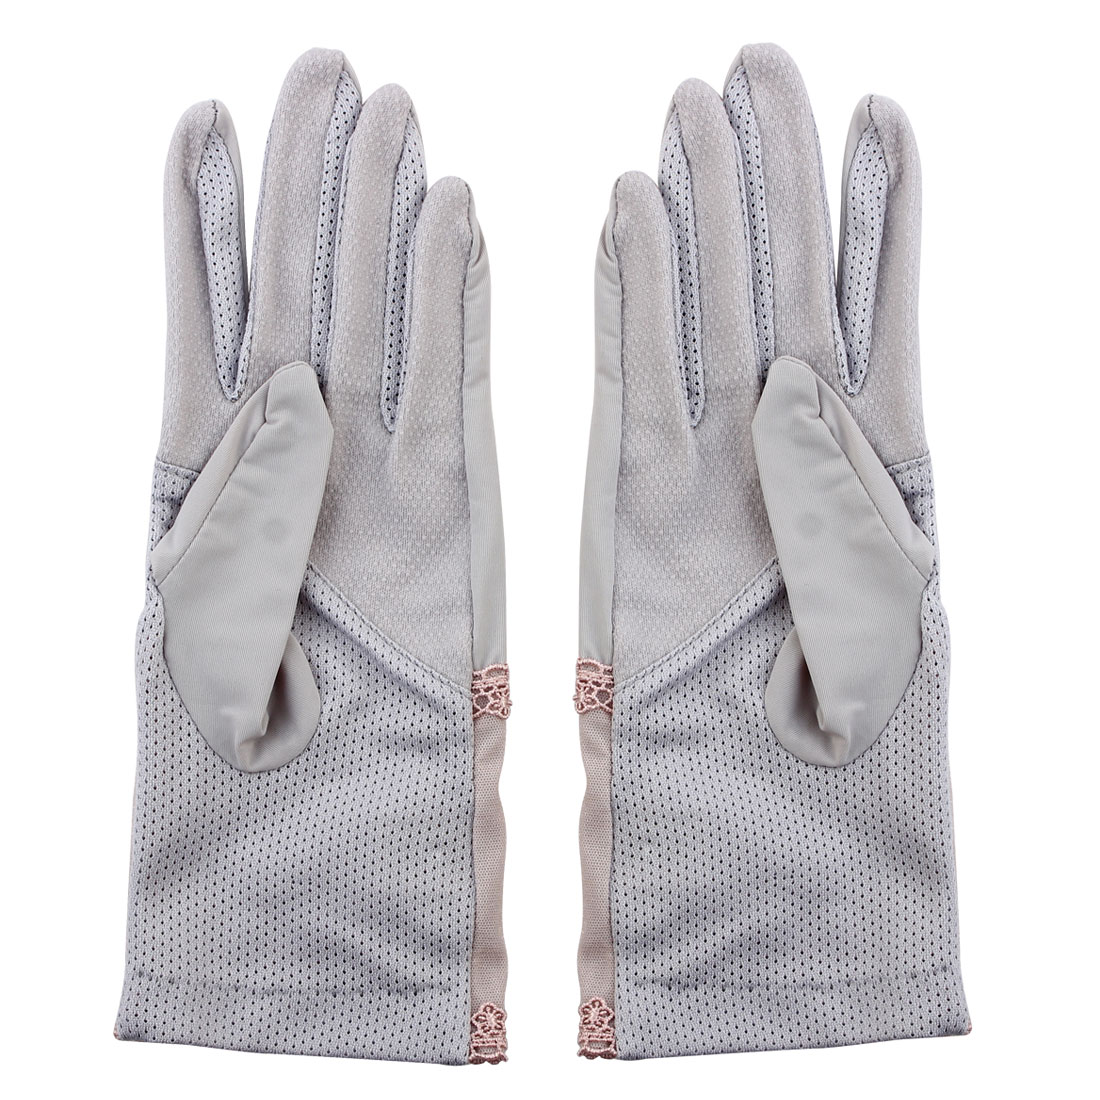 Outdoor Travel Driving Flower Imitation Pearl Decor Full Finger Non-slip Sun Resistant Gloves Gray Pair for Ladies